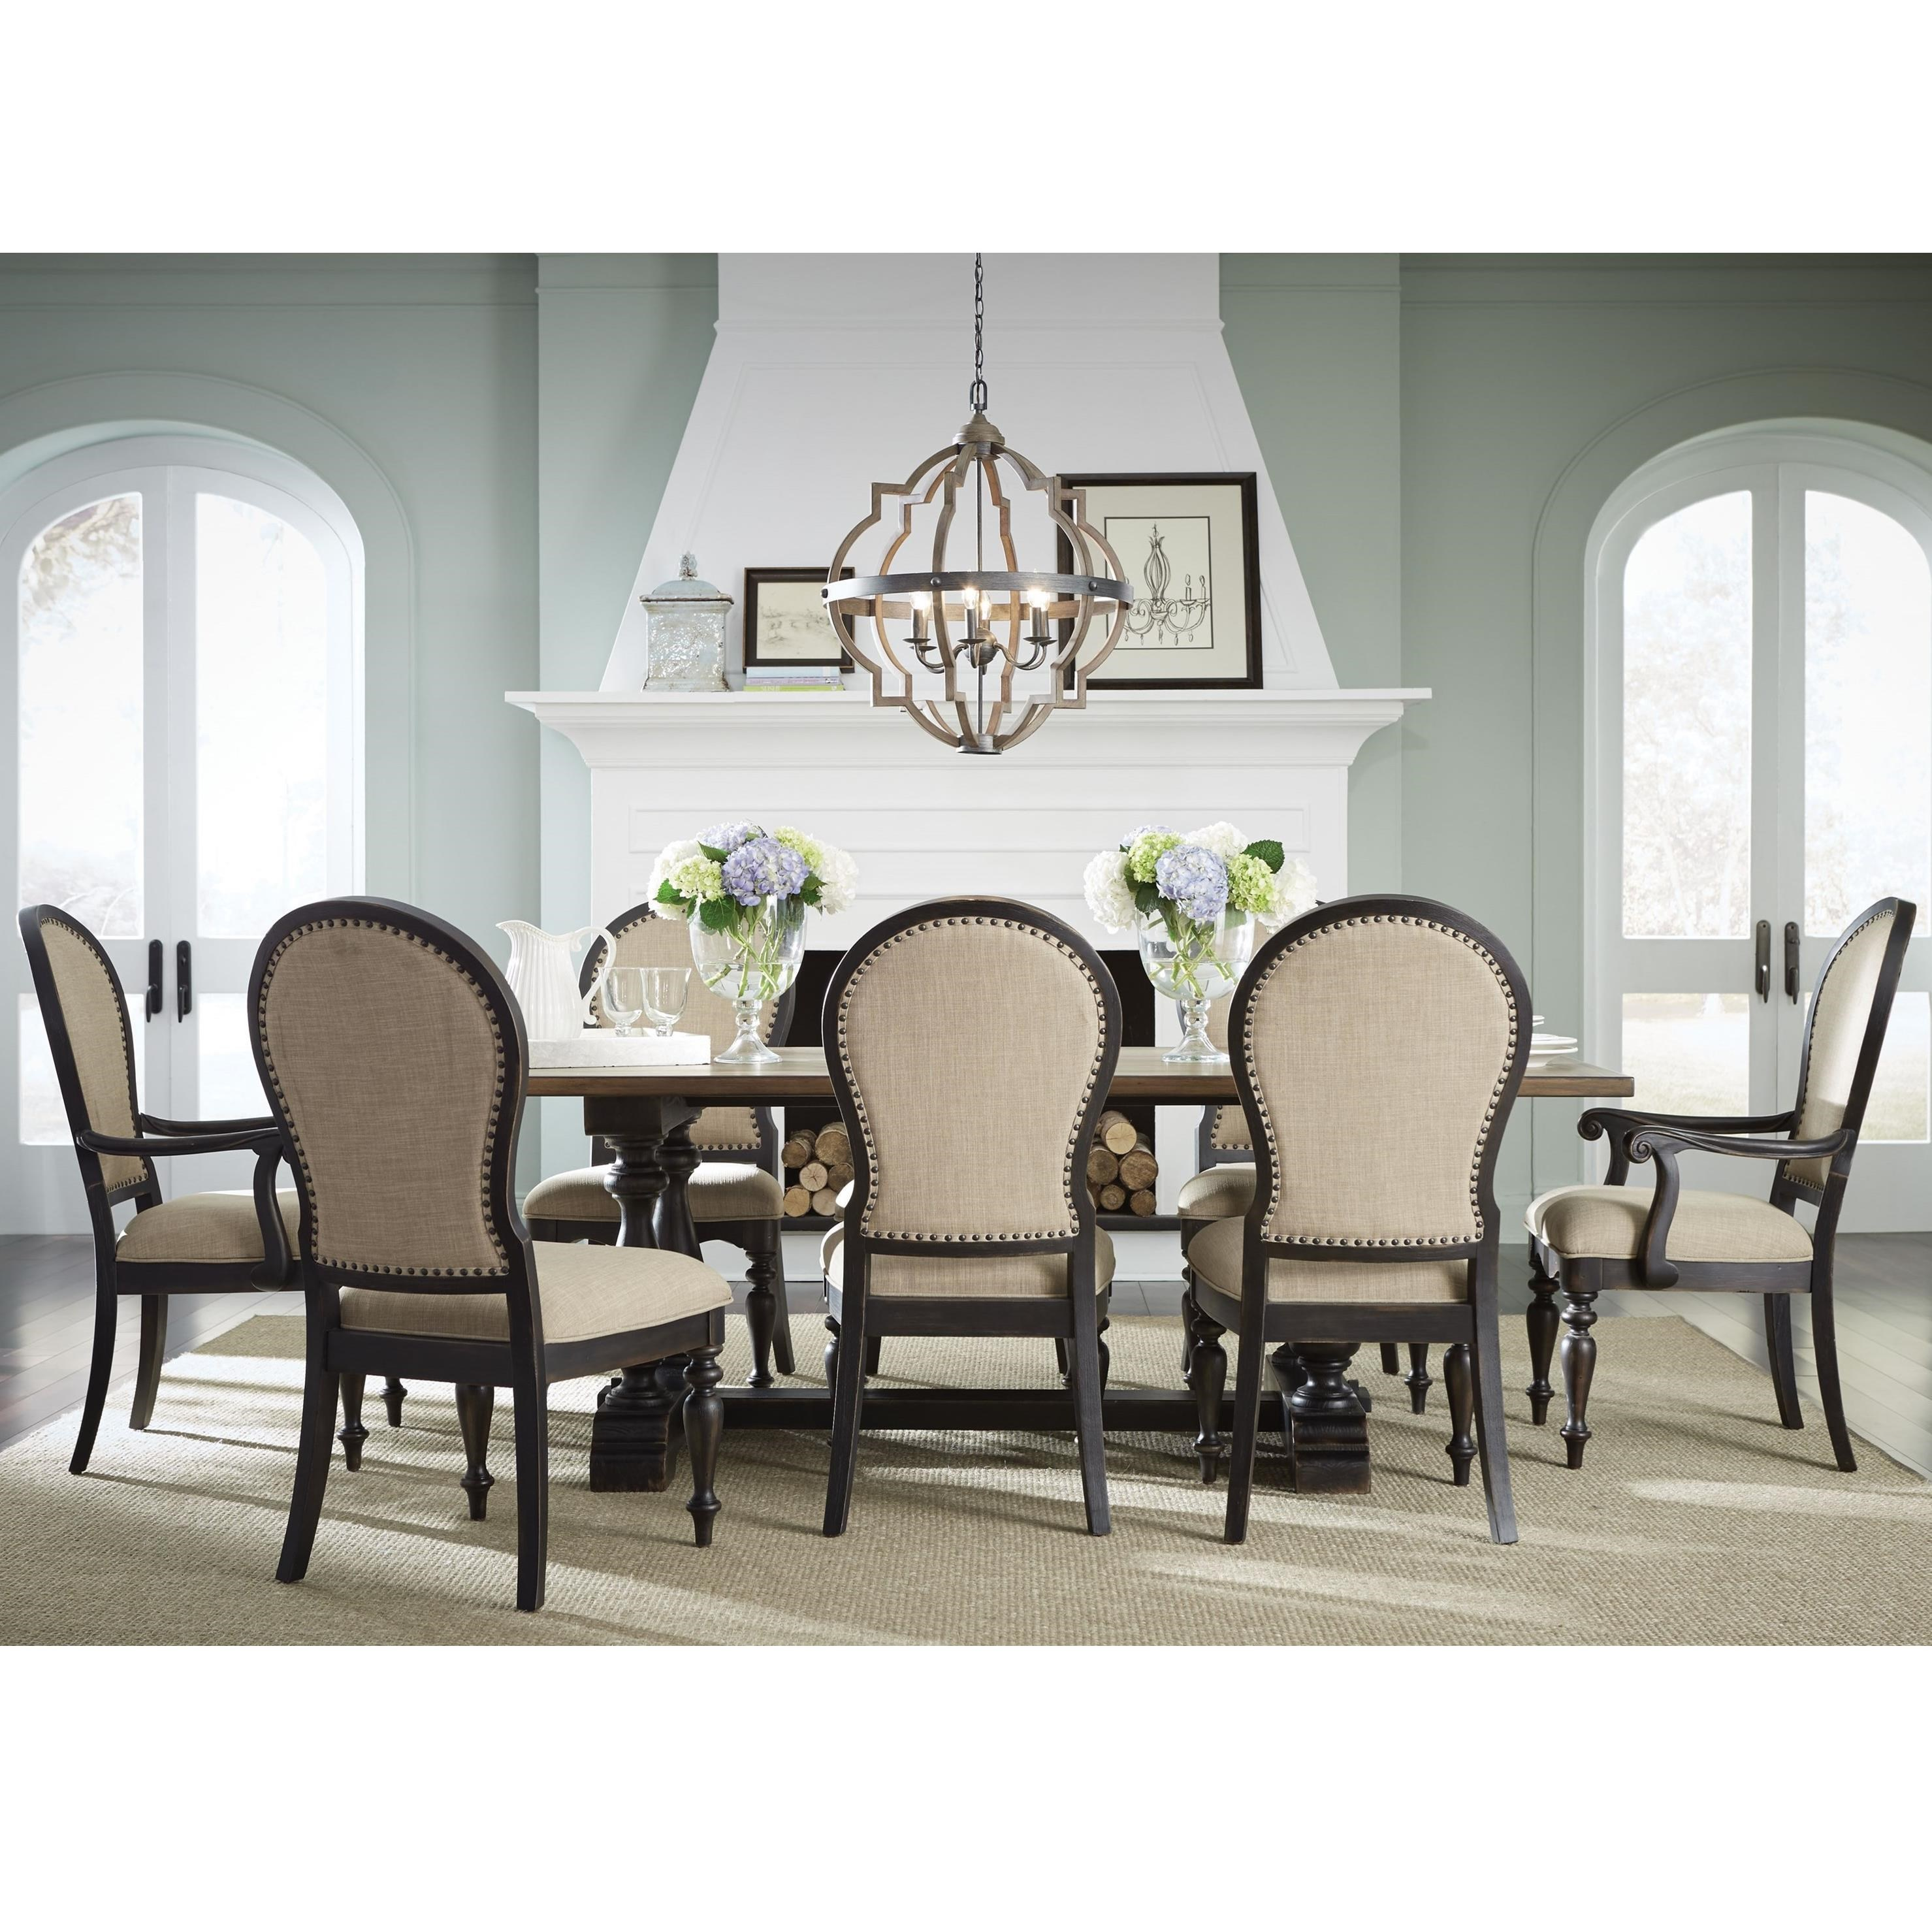 Standard Furniture CambriaTable and Chair Set